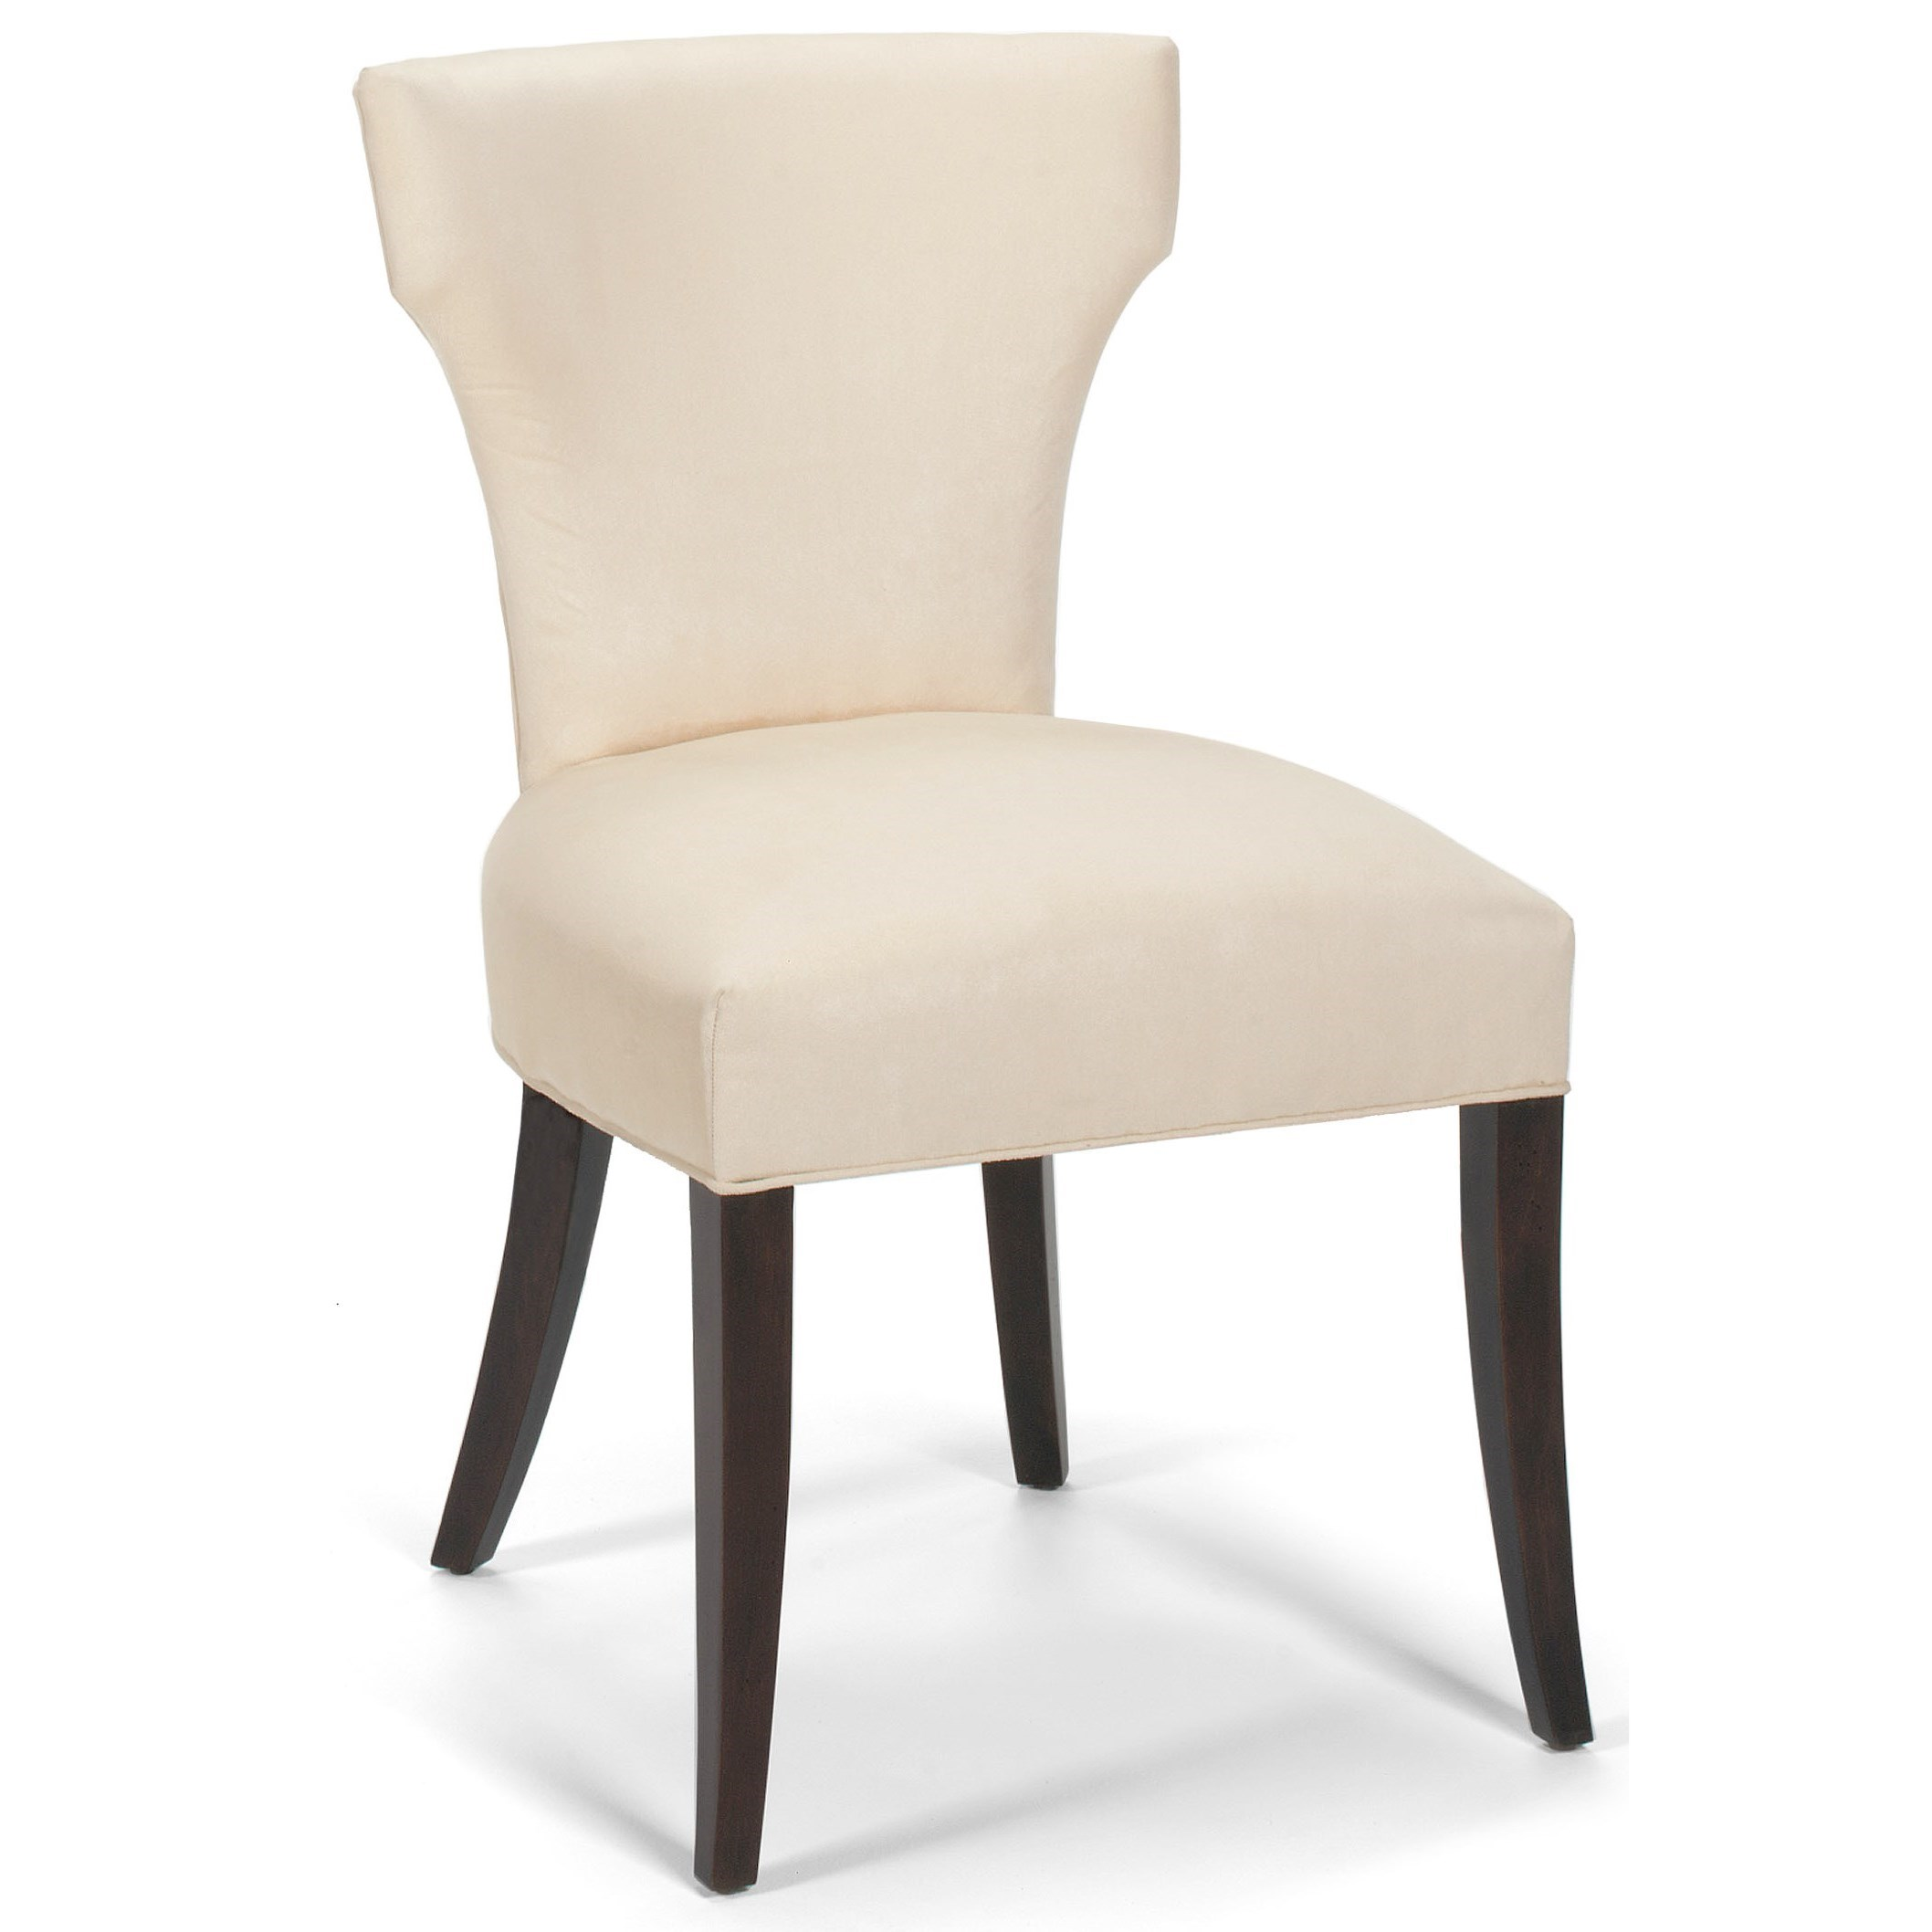 Fairfield Dining Chairs Side Chair by Fairfield at Belfort Furniture